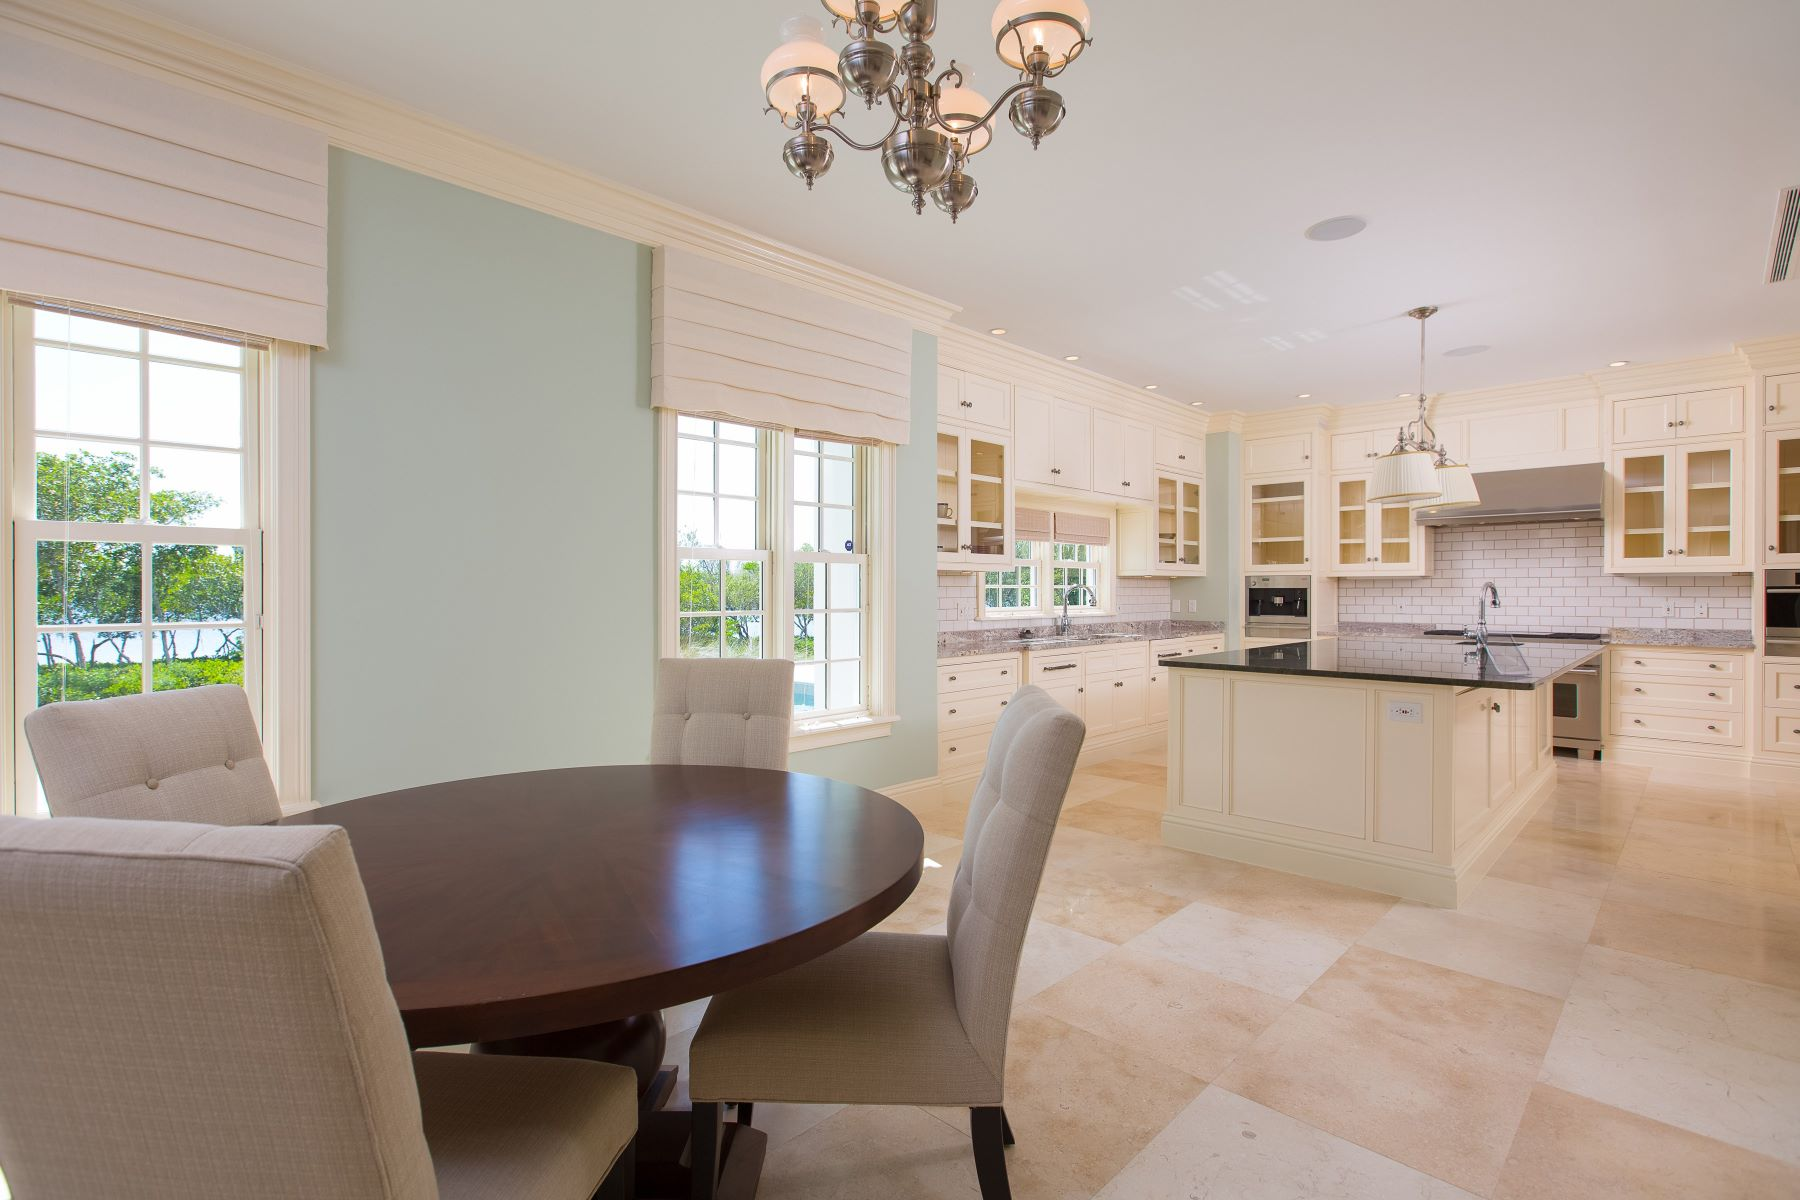 Additional photo for property listing at 9235 W. Marsh Island Drive Vero Beach, Florida 32963 United States